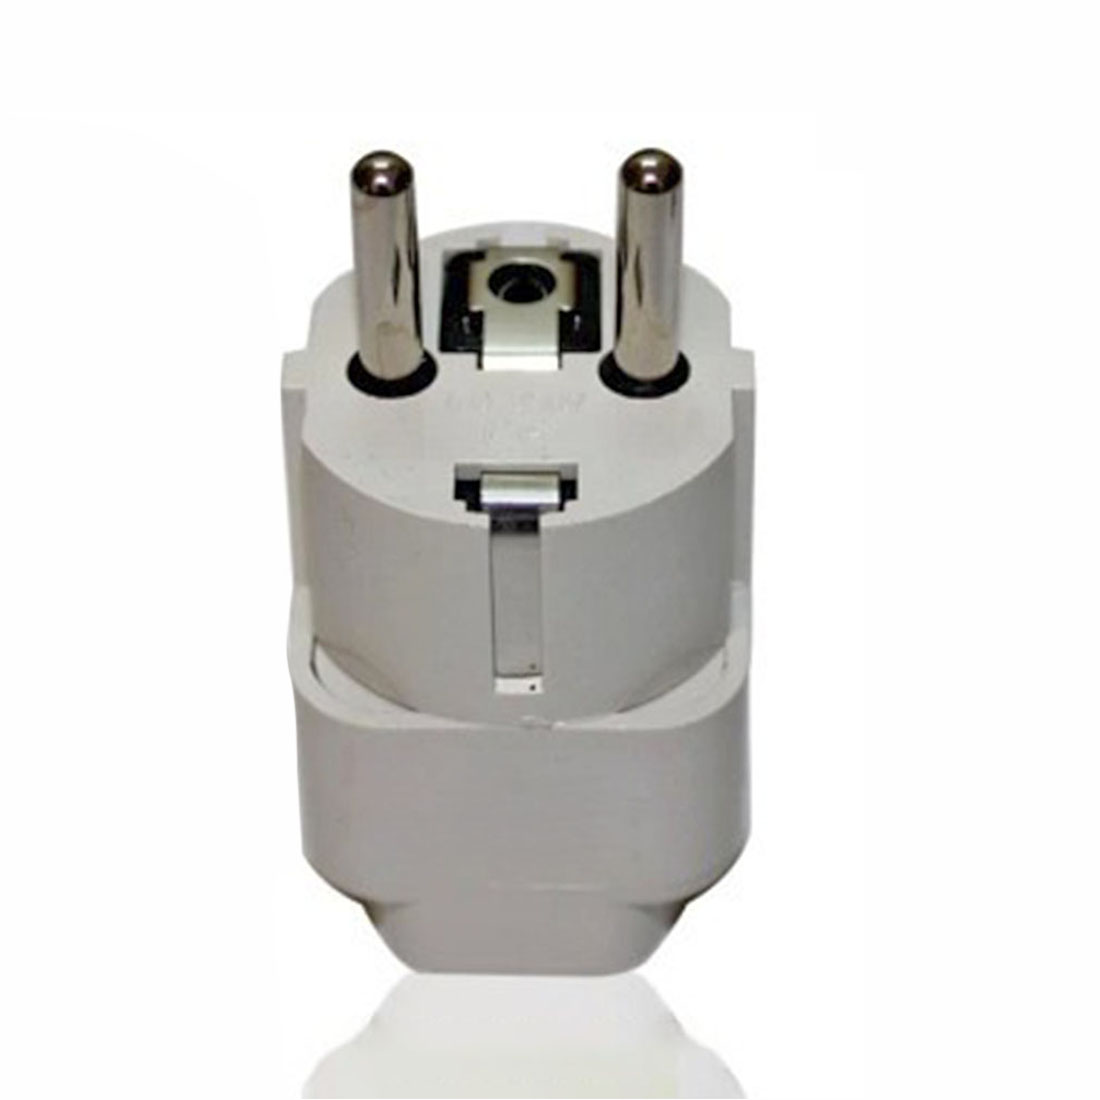 Universal EU Plug Converter Adapter (For Countries With EU Plug)